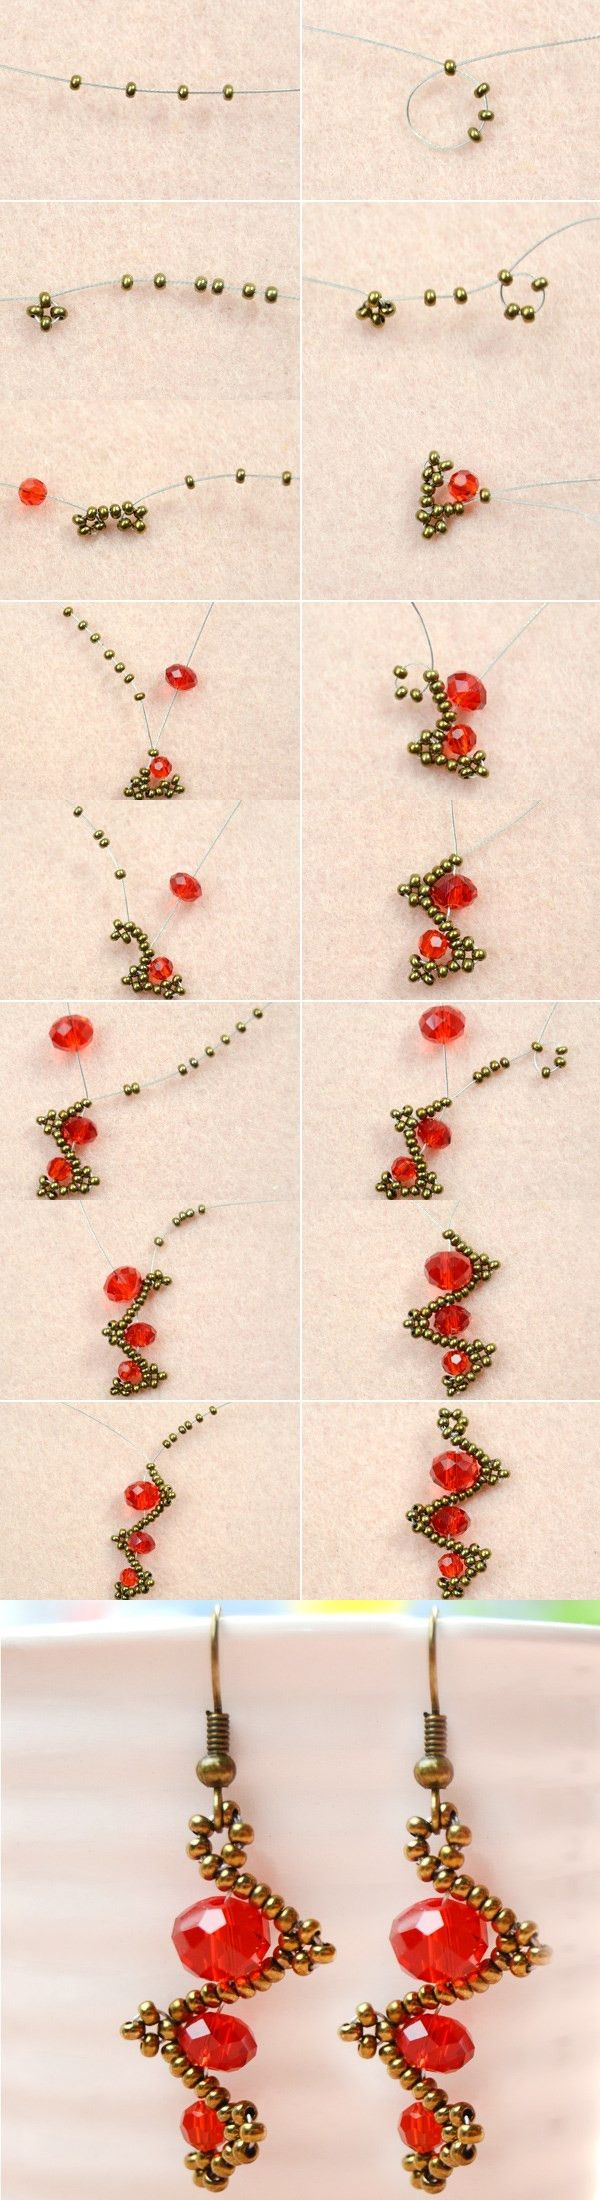 Tutorial on How to Make Simple Twist Red Bead Earrings from LC.Pandahall.com